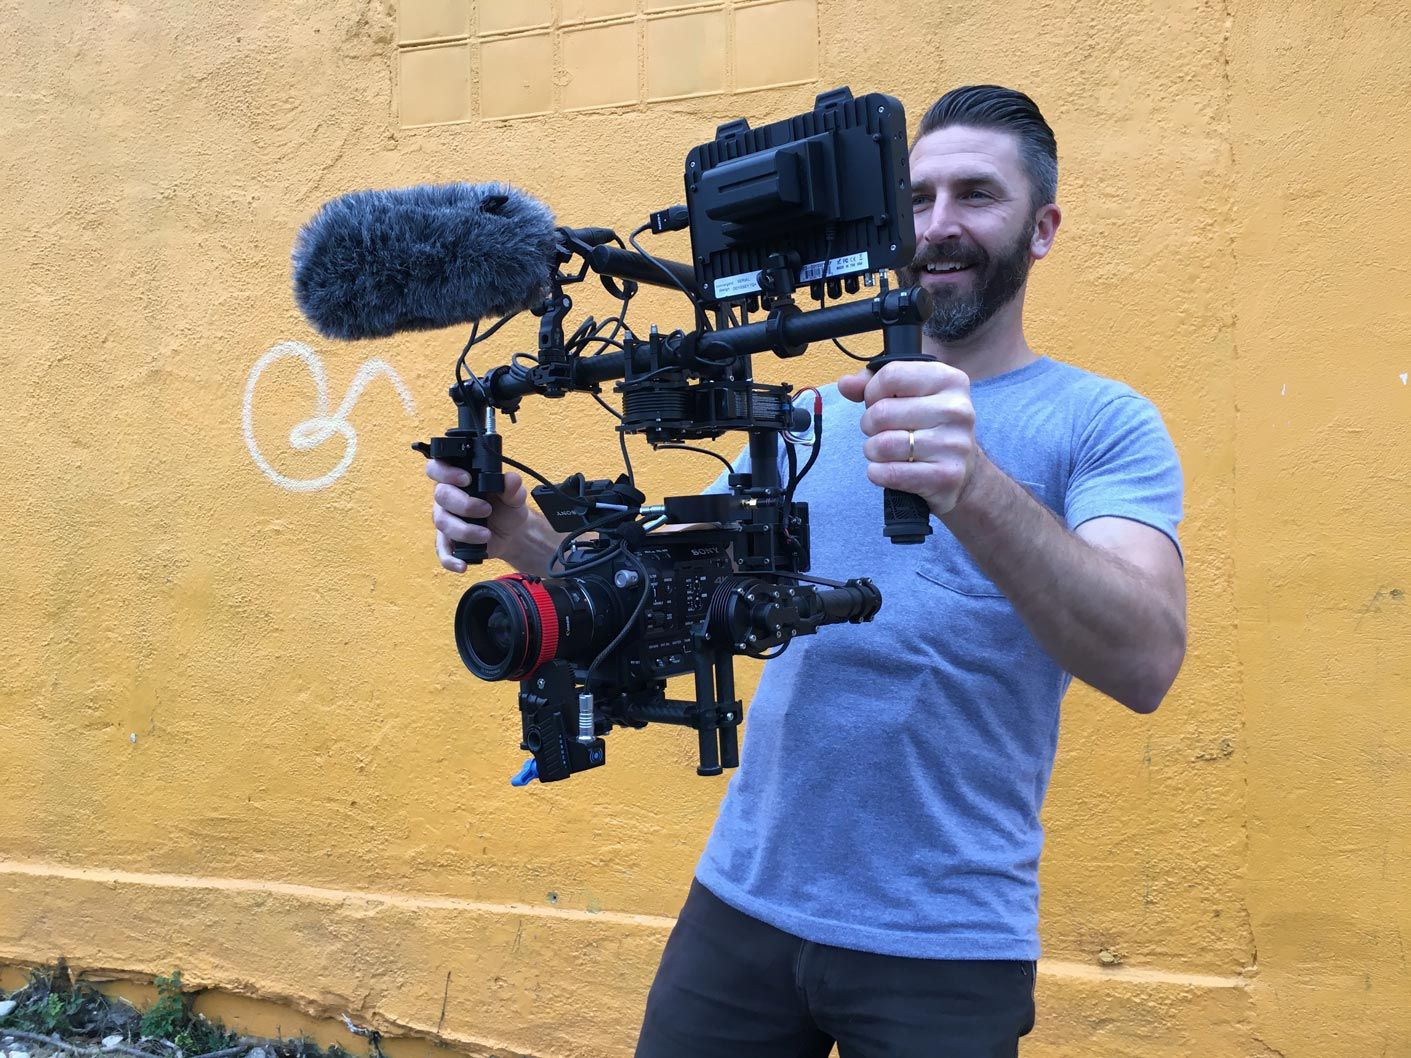 Sony Fs5 Review From Newshooter Joe Simon Http Www Newsshooter